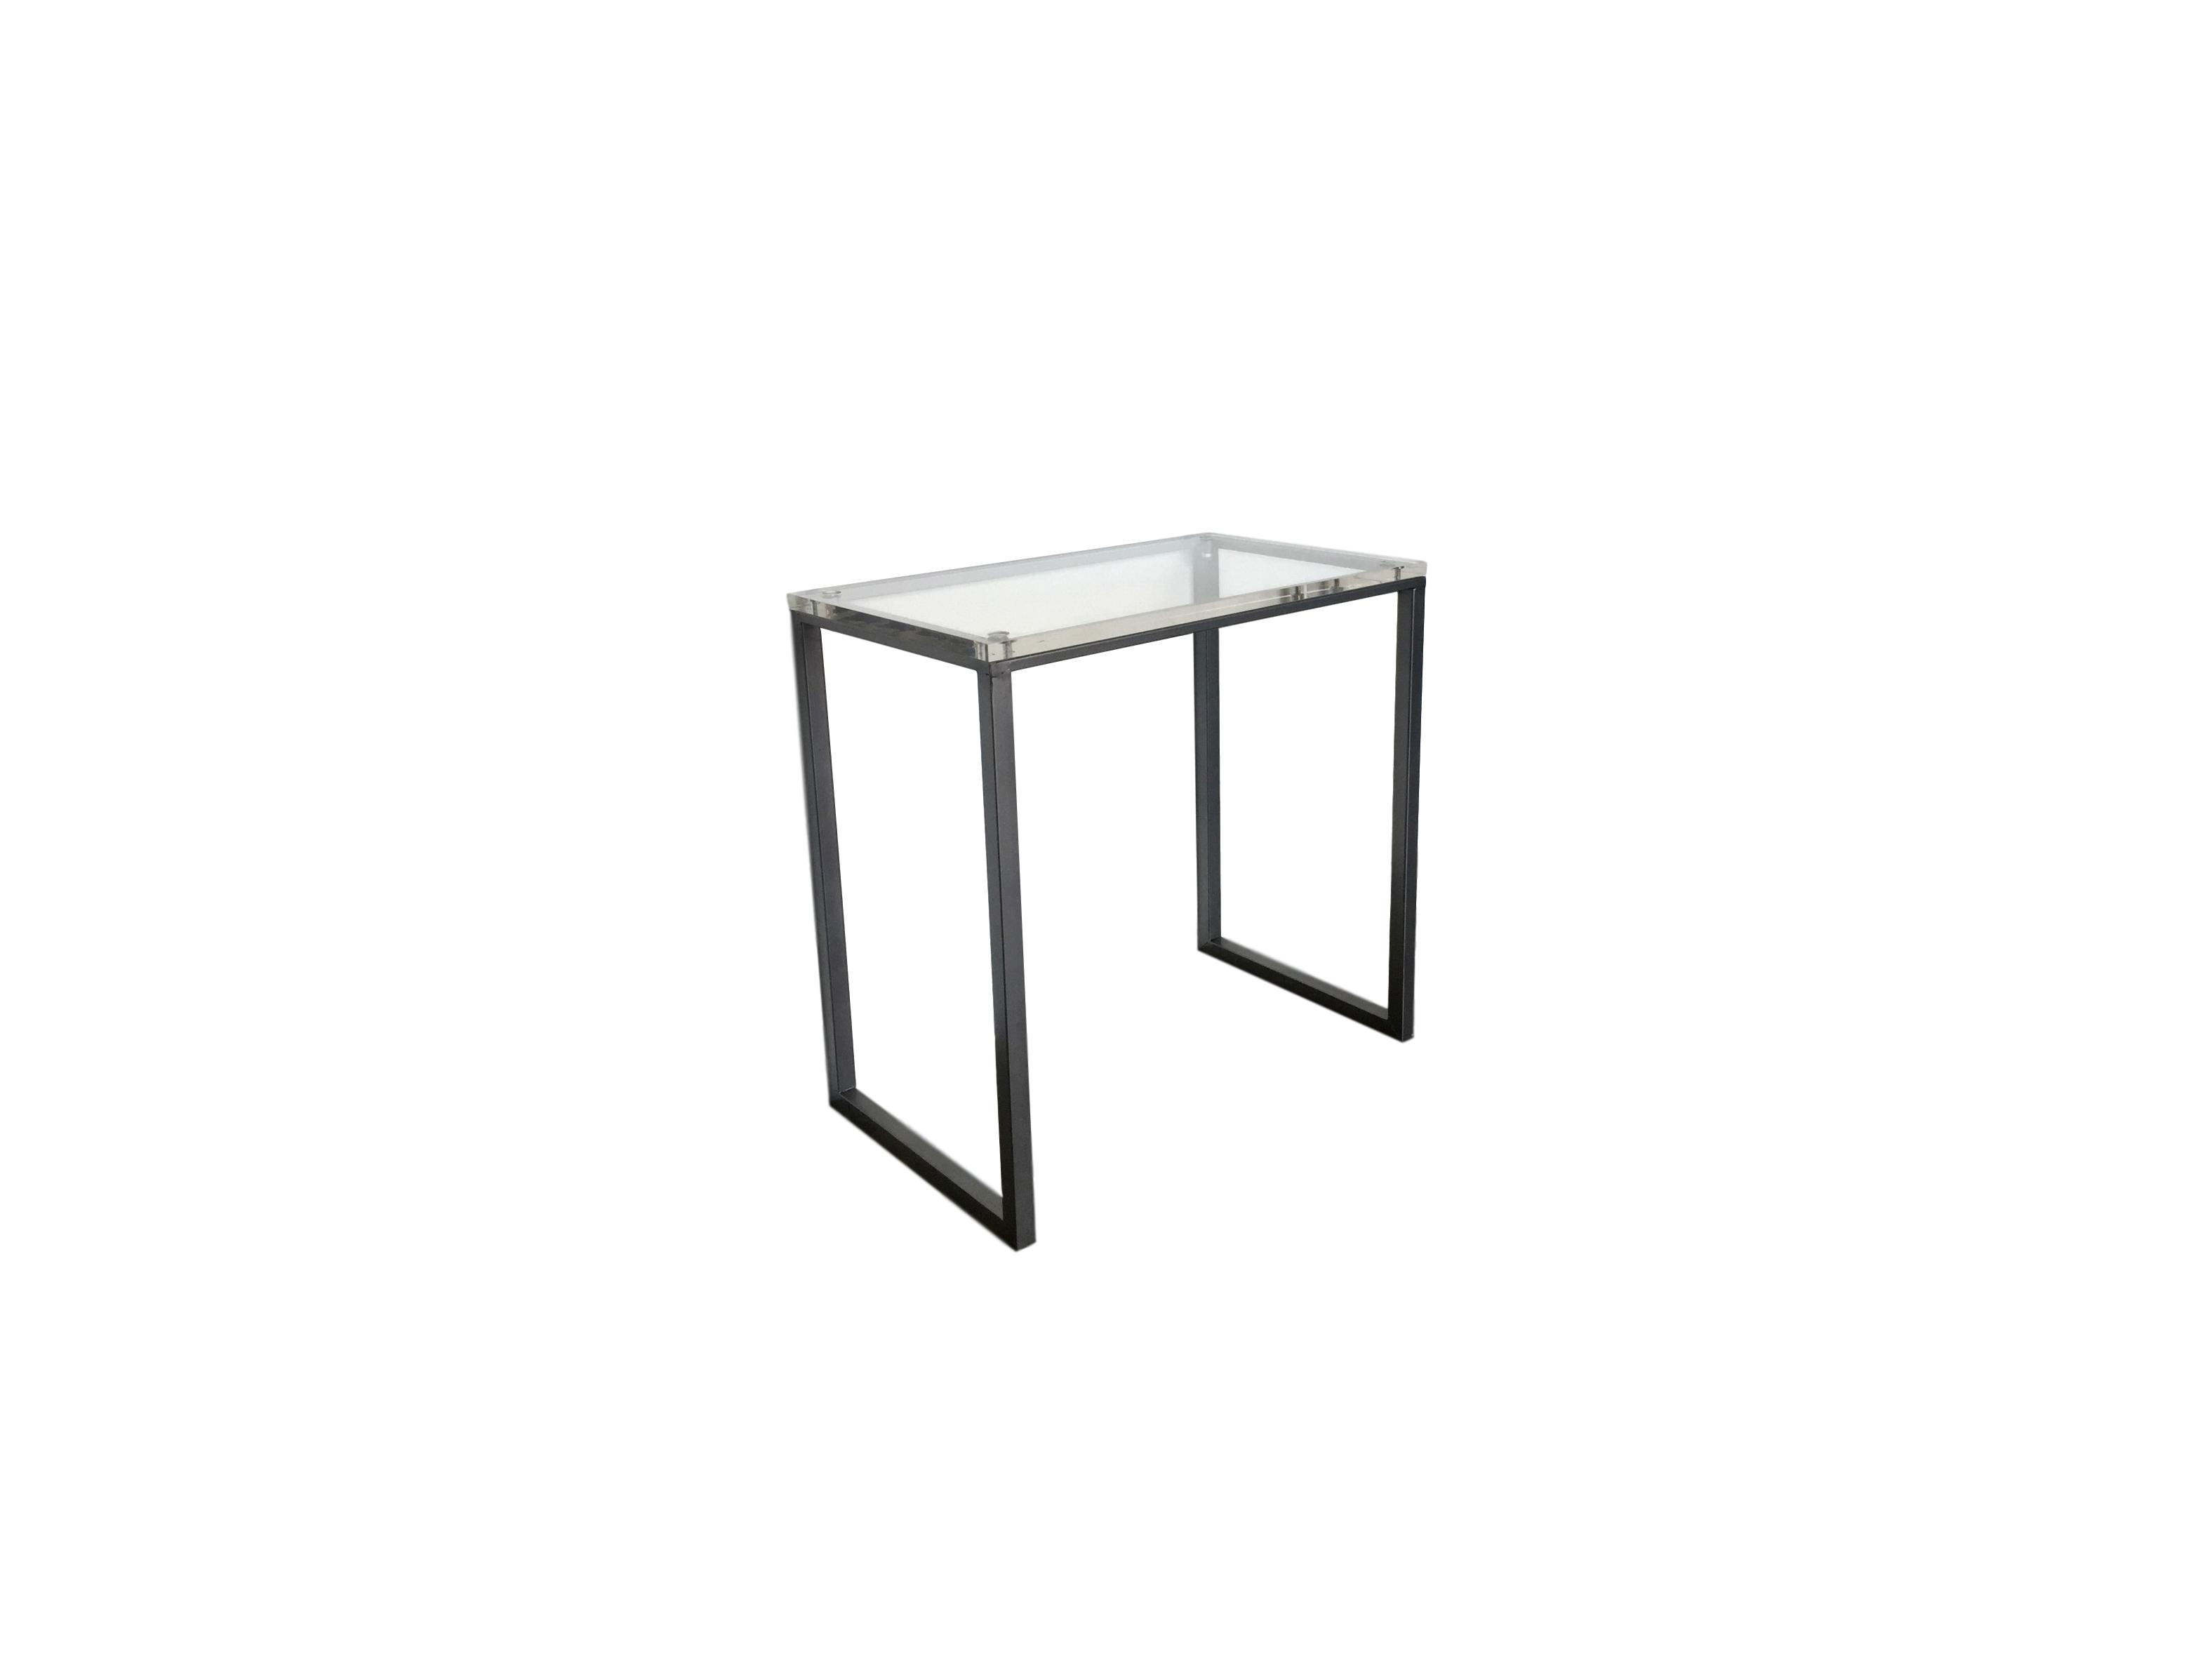 acrylic nickel accent table hoffer furniture wellington inch square vinyl tablecloth modern black end bridal shower registry all glass side outdoor umbrella and stand contemporary